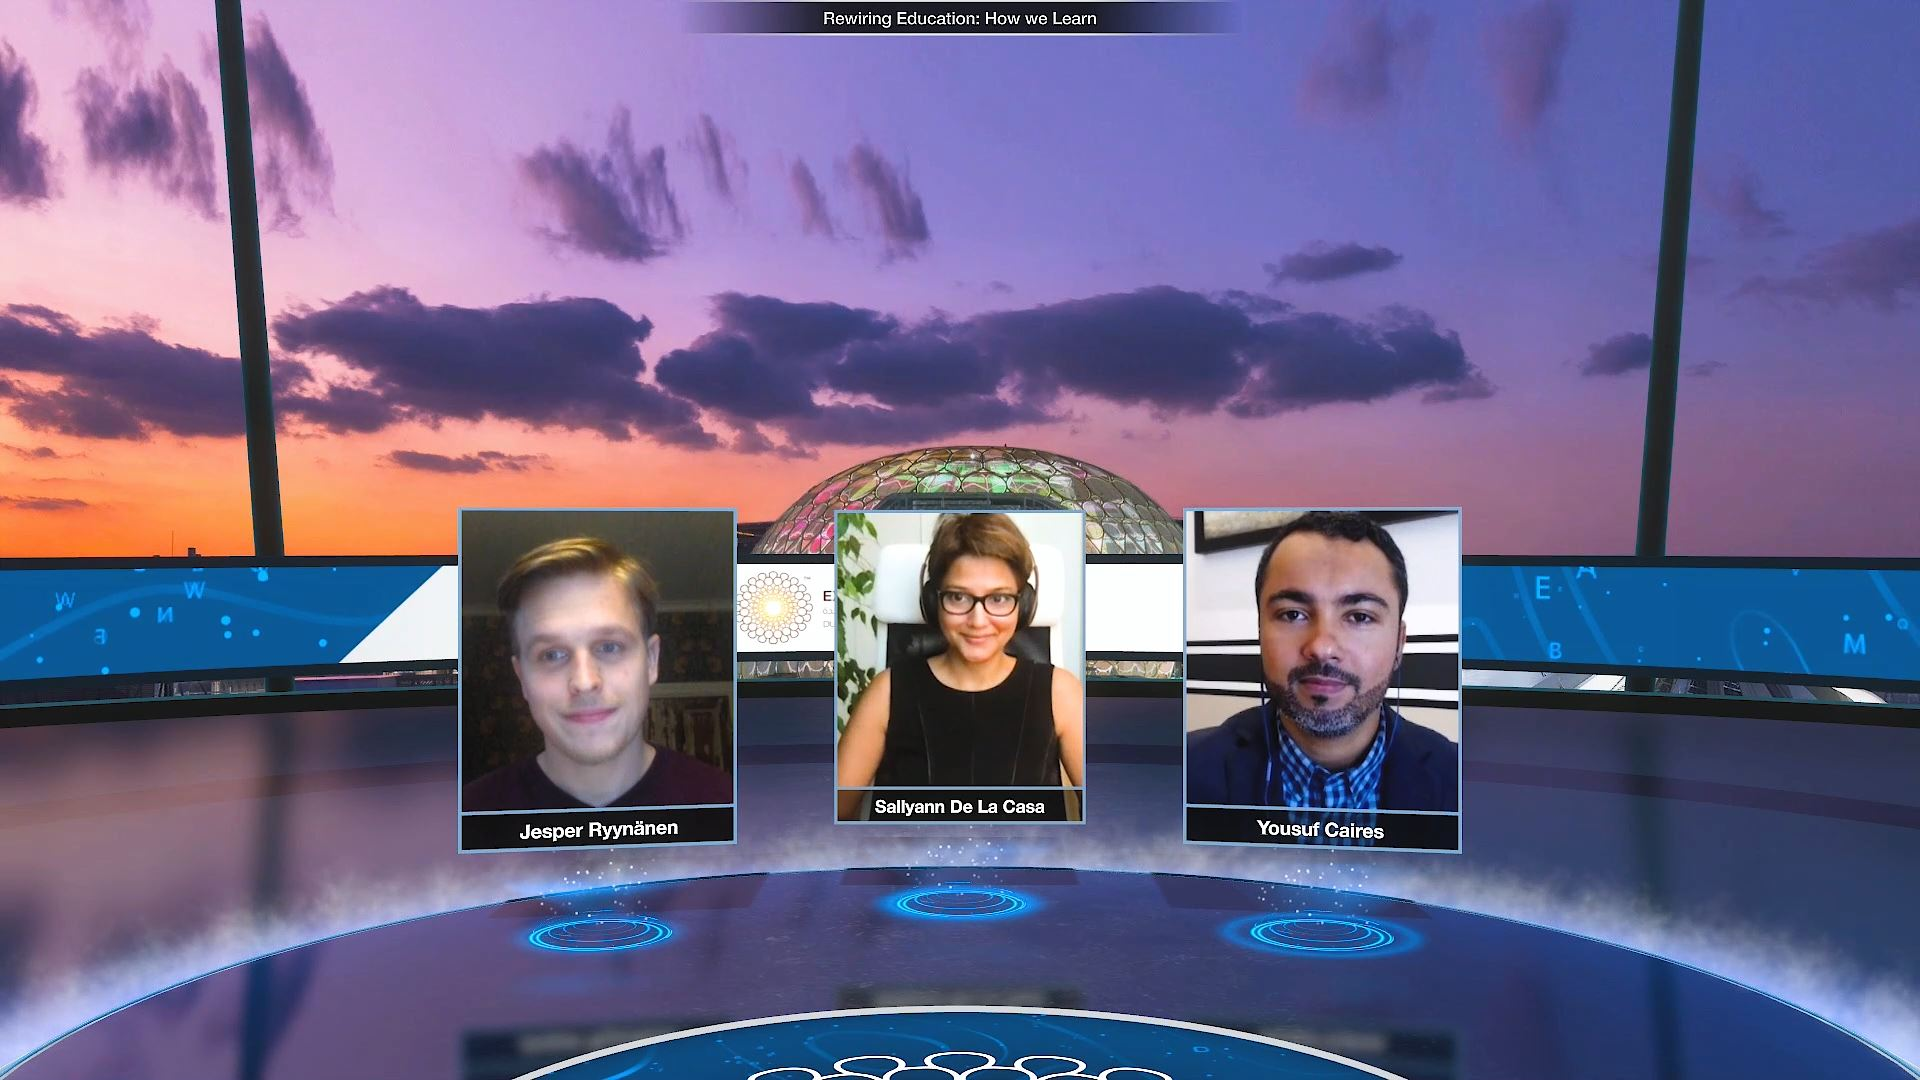 expo 2020 knowledge and learning week virtual event panel discussion